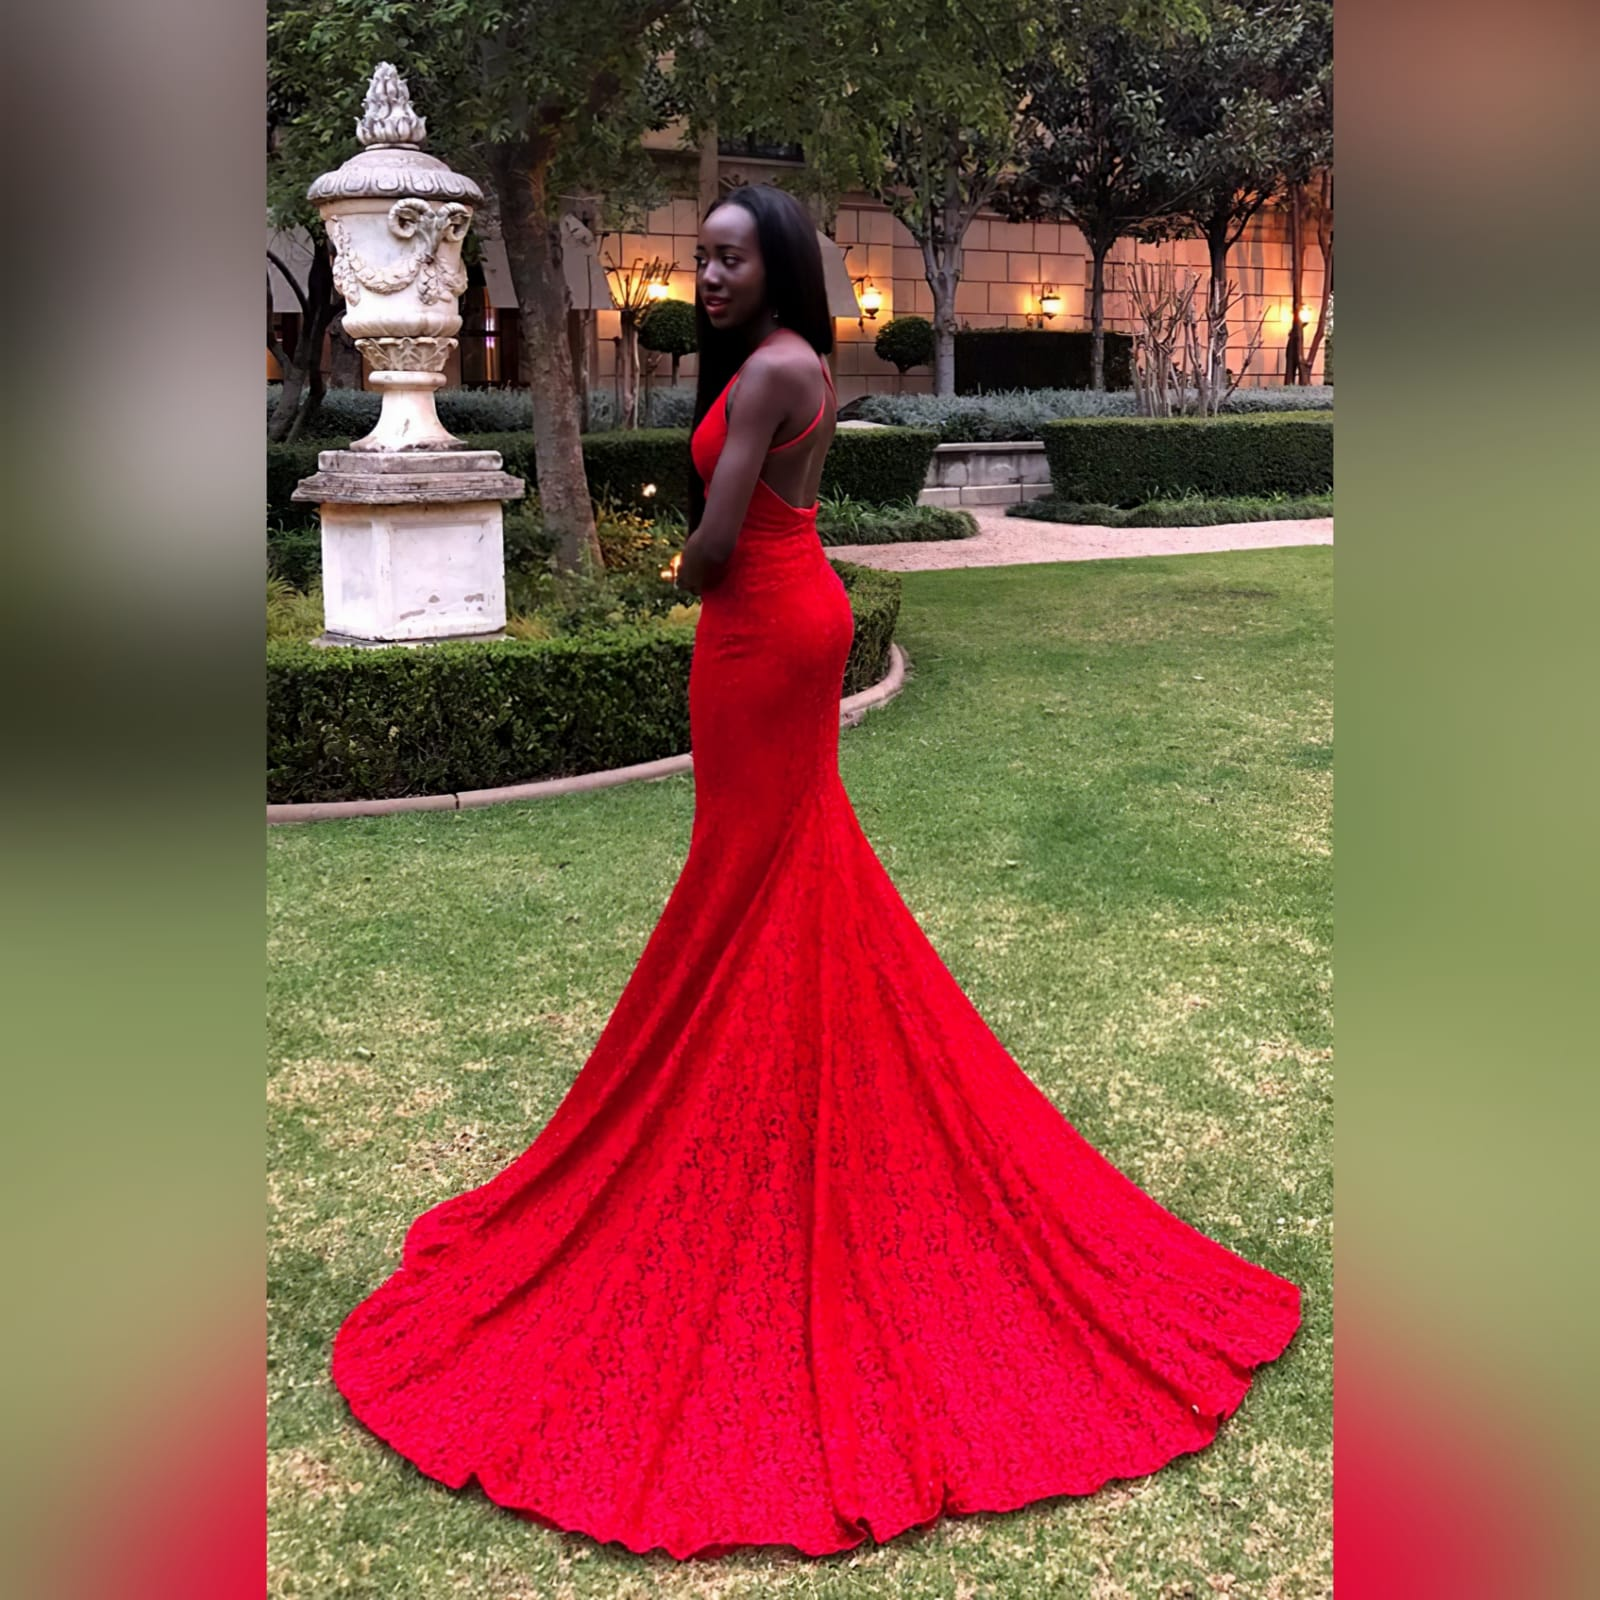 Bright red fully lace soft mermaid dress 1 bright red fully lace soft mermaid dress with a v neckline, thin shoulder straps and a low open back. With a wide long train.